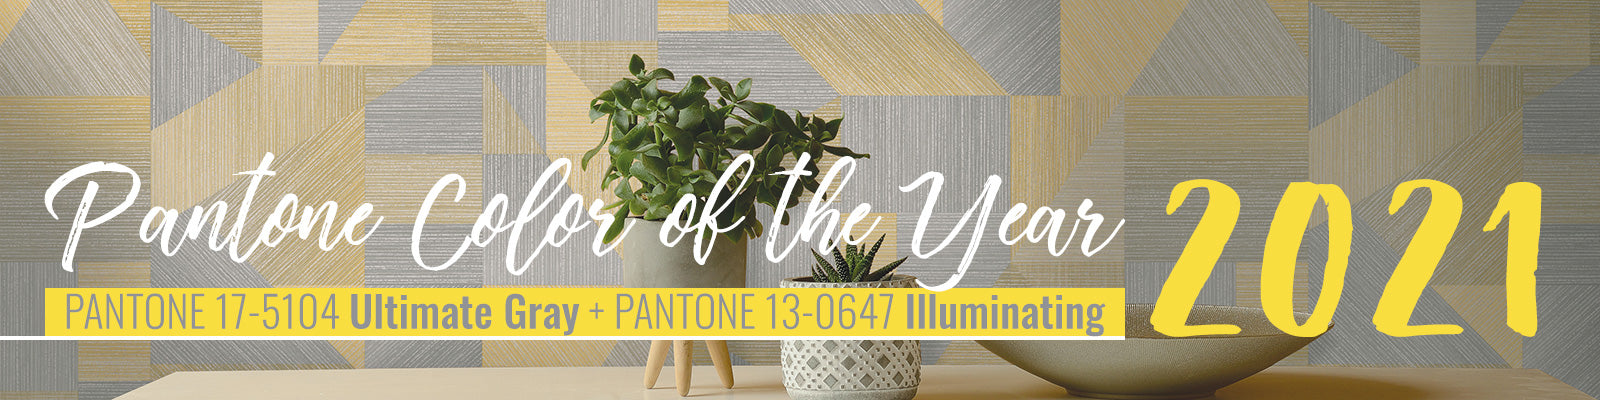 pantone's 2021 color of the year wallpaper